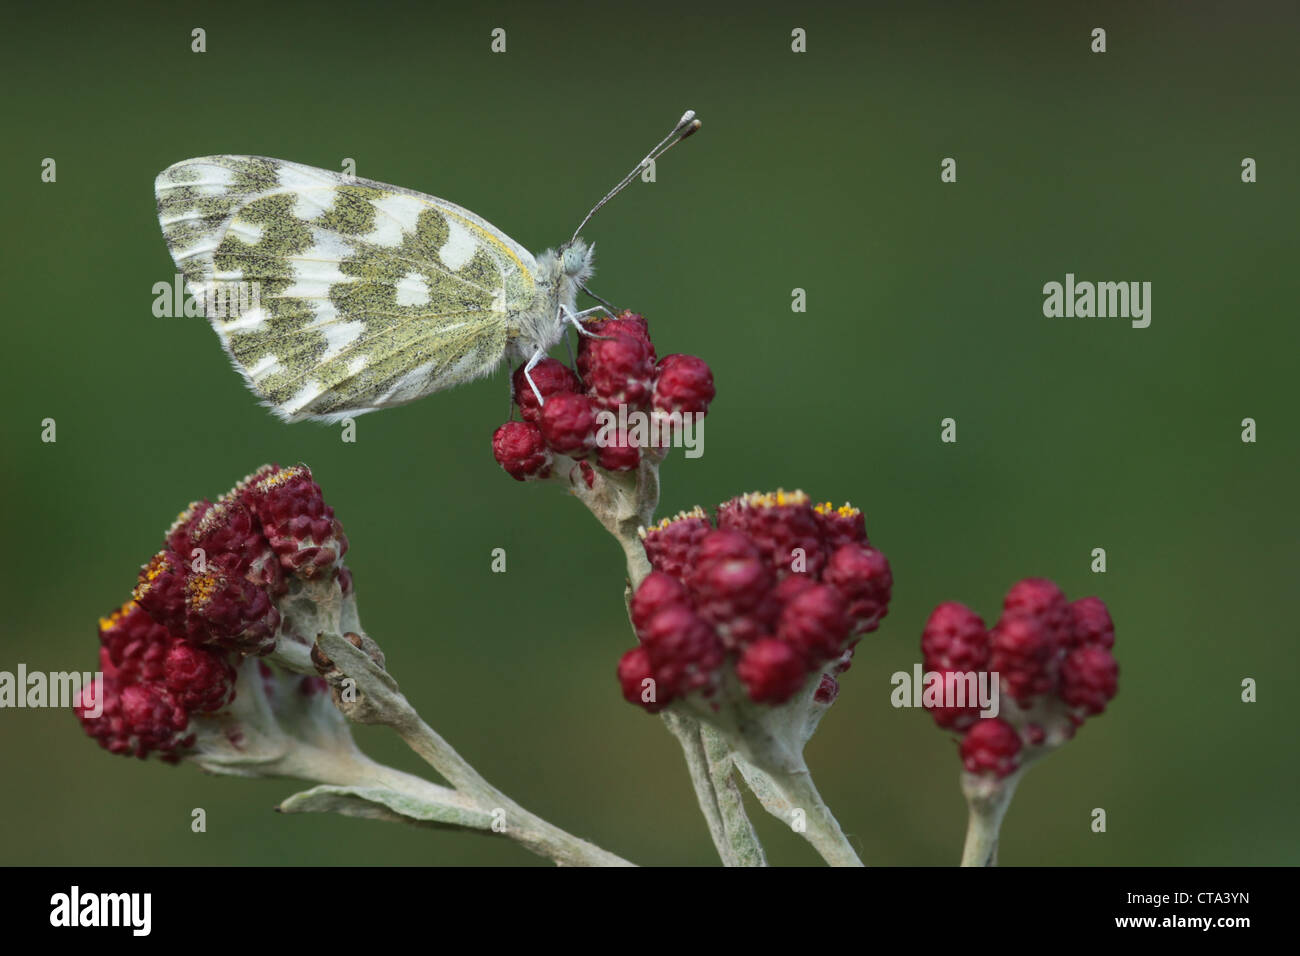 Bath White (Pontia daplidice) Butterfly Red Everlasting (Helichrysum sanguineum) Photographed in Israel in May Stock Photo